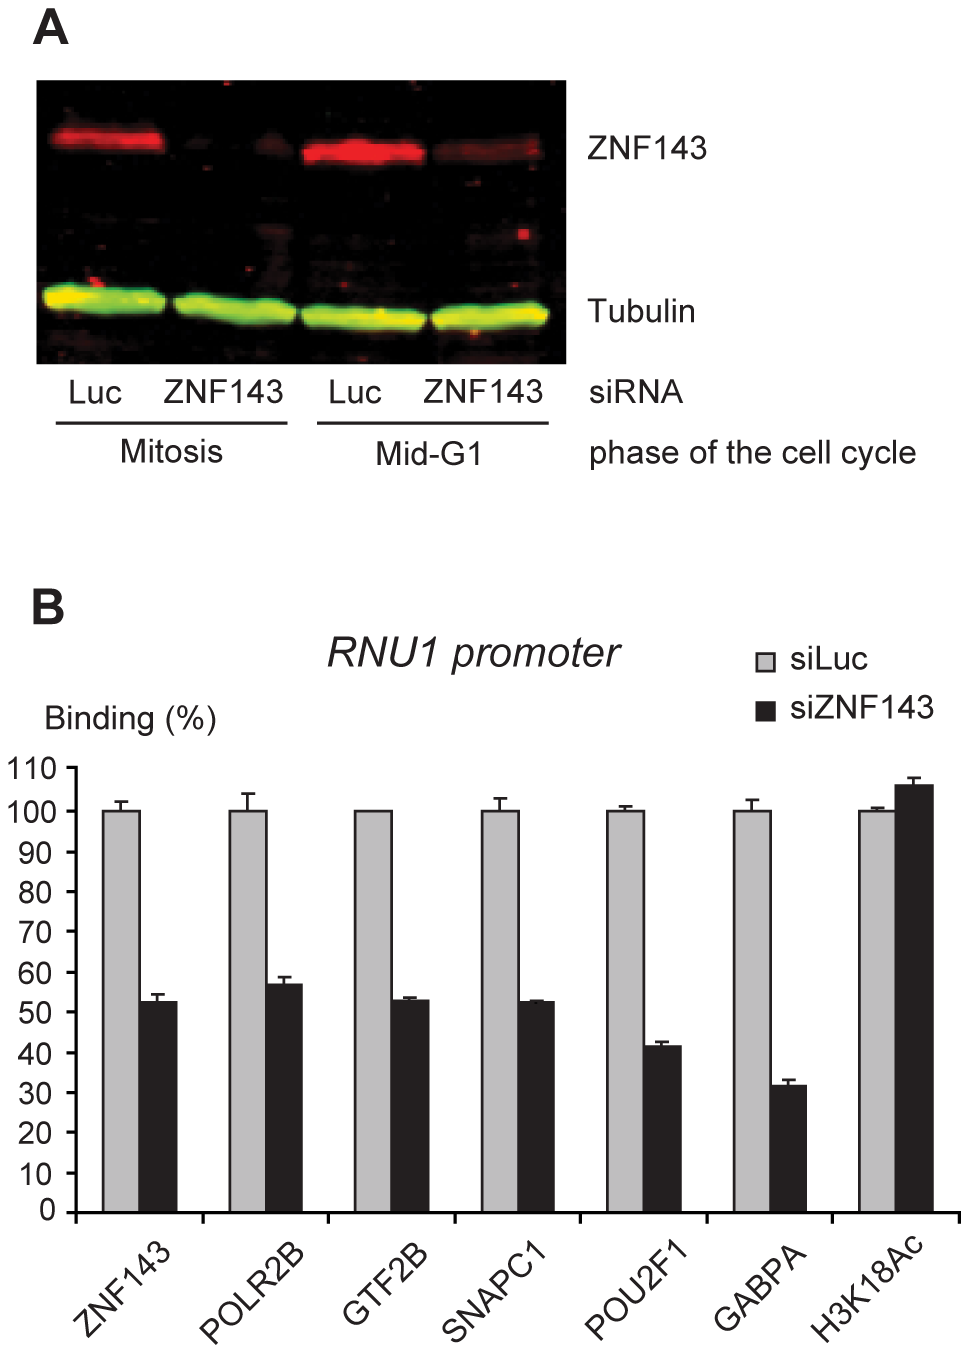 Depletion of endogenous ZNF143 reduces transcription factor recruitment on the U1 promoter in mid-G1.